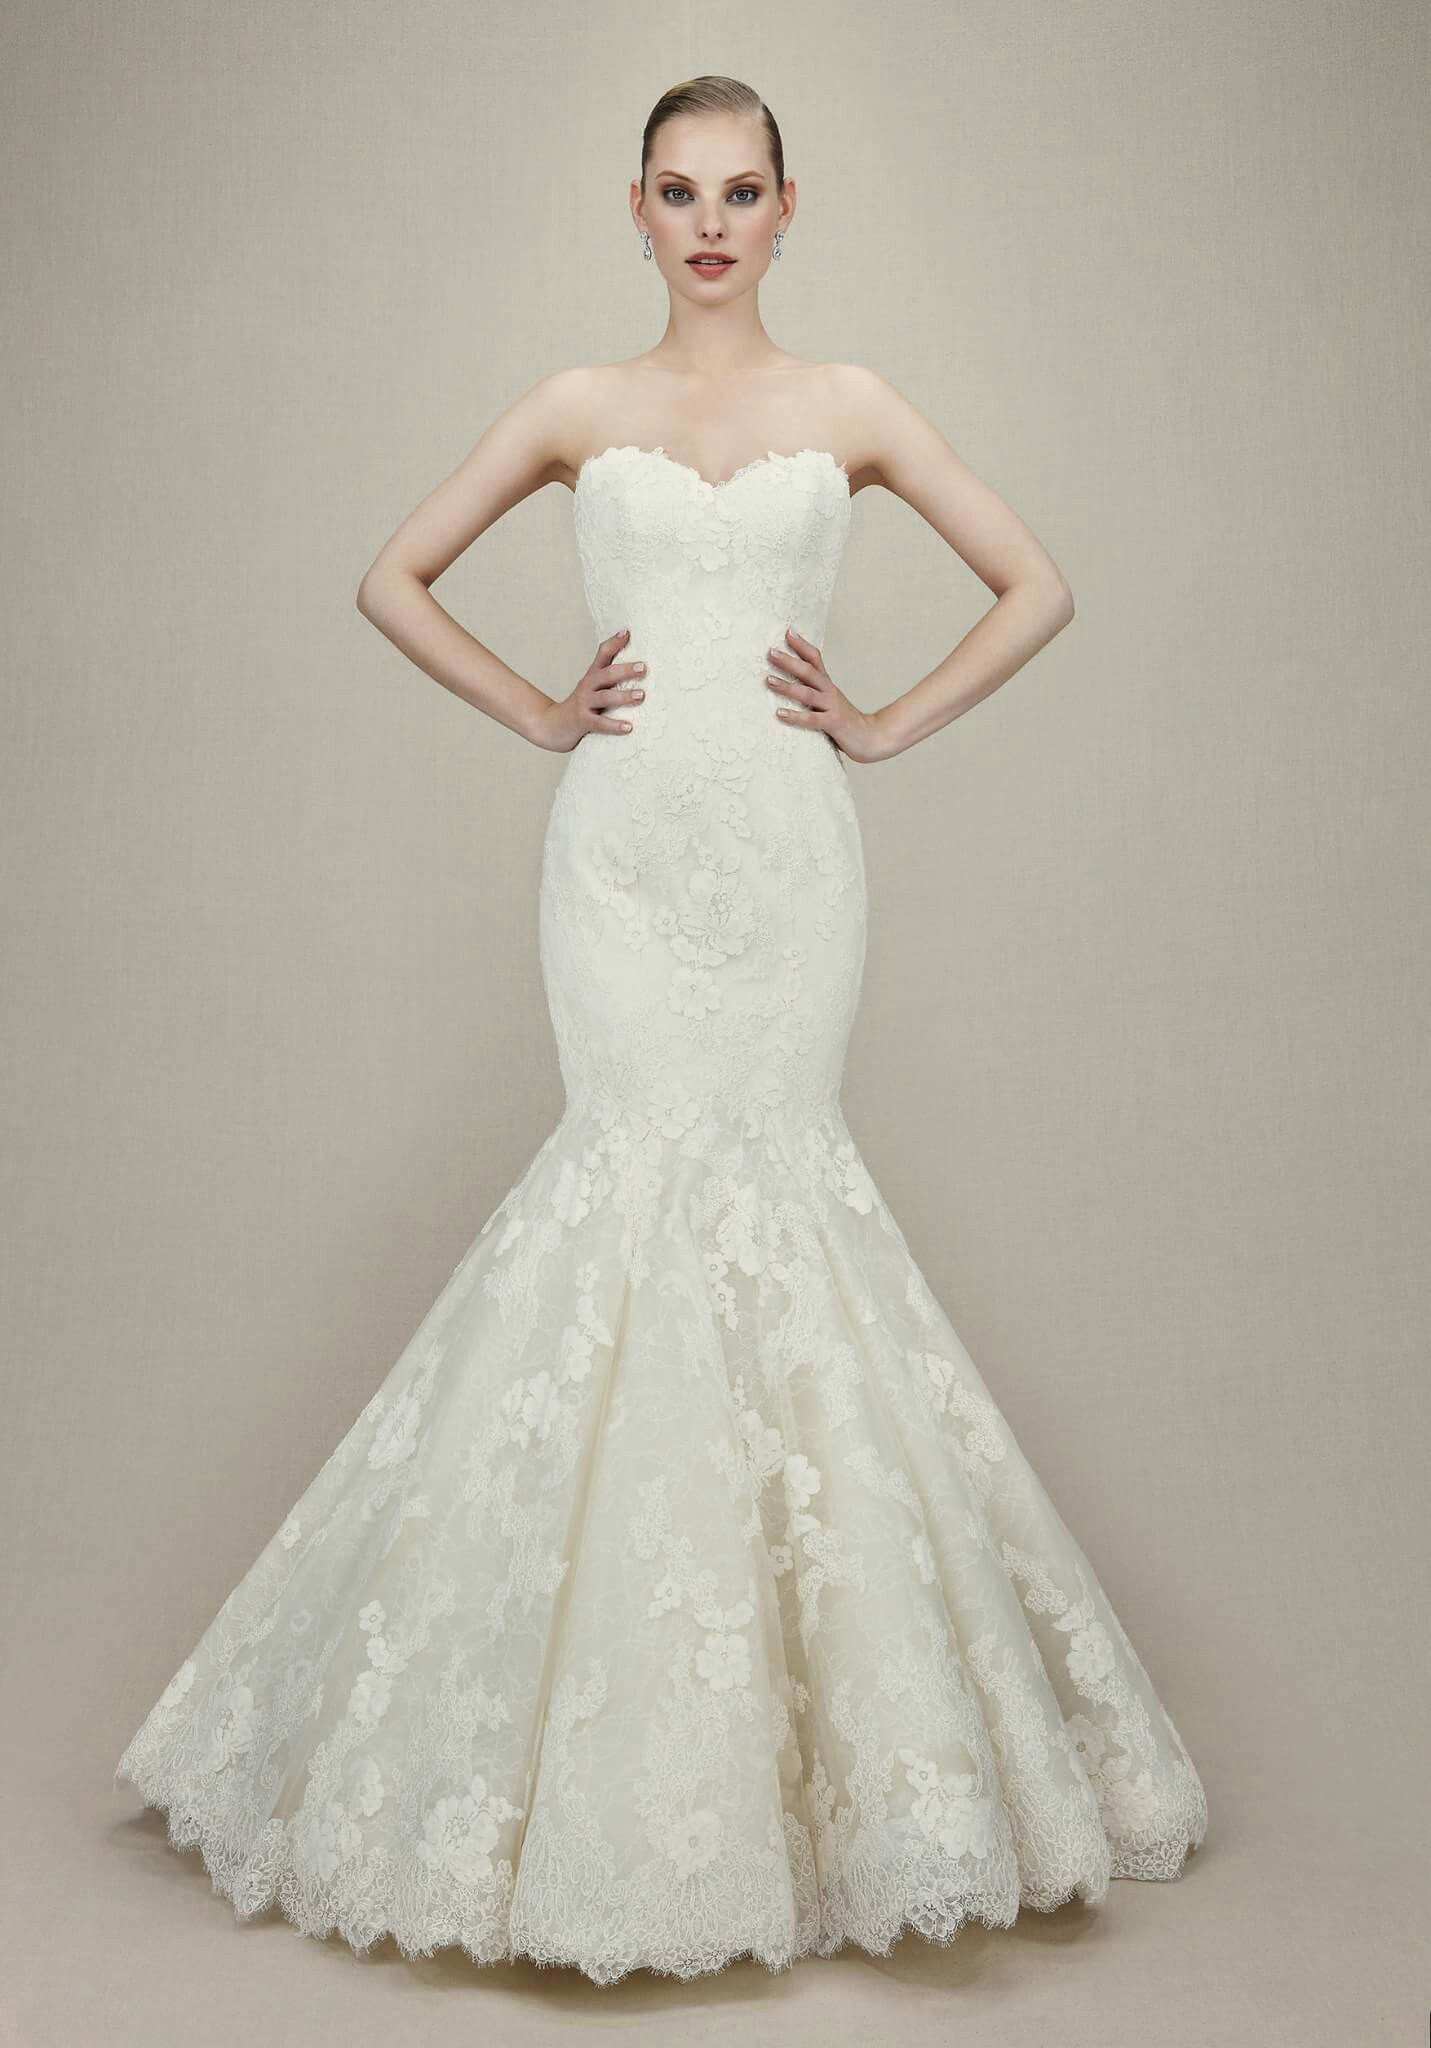 Pin by Tracy Kennedy on WEDDING DRESSES | Pinterest | Wedding dress ...